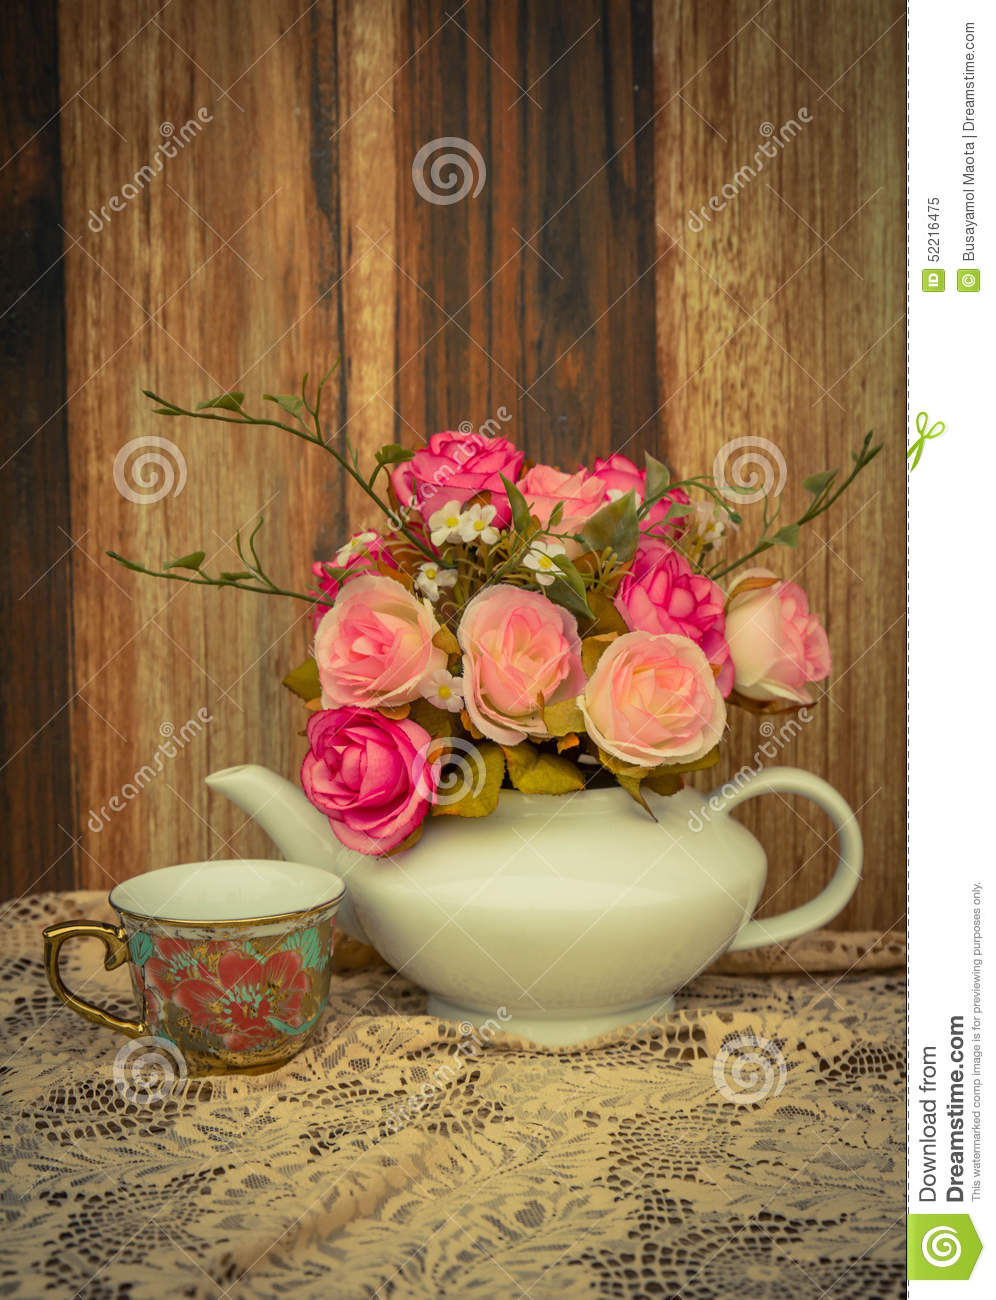 Flower In A White Tea Pot And Vintage Cozy Home Rustic